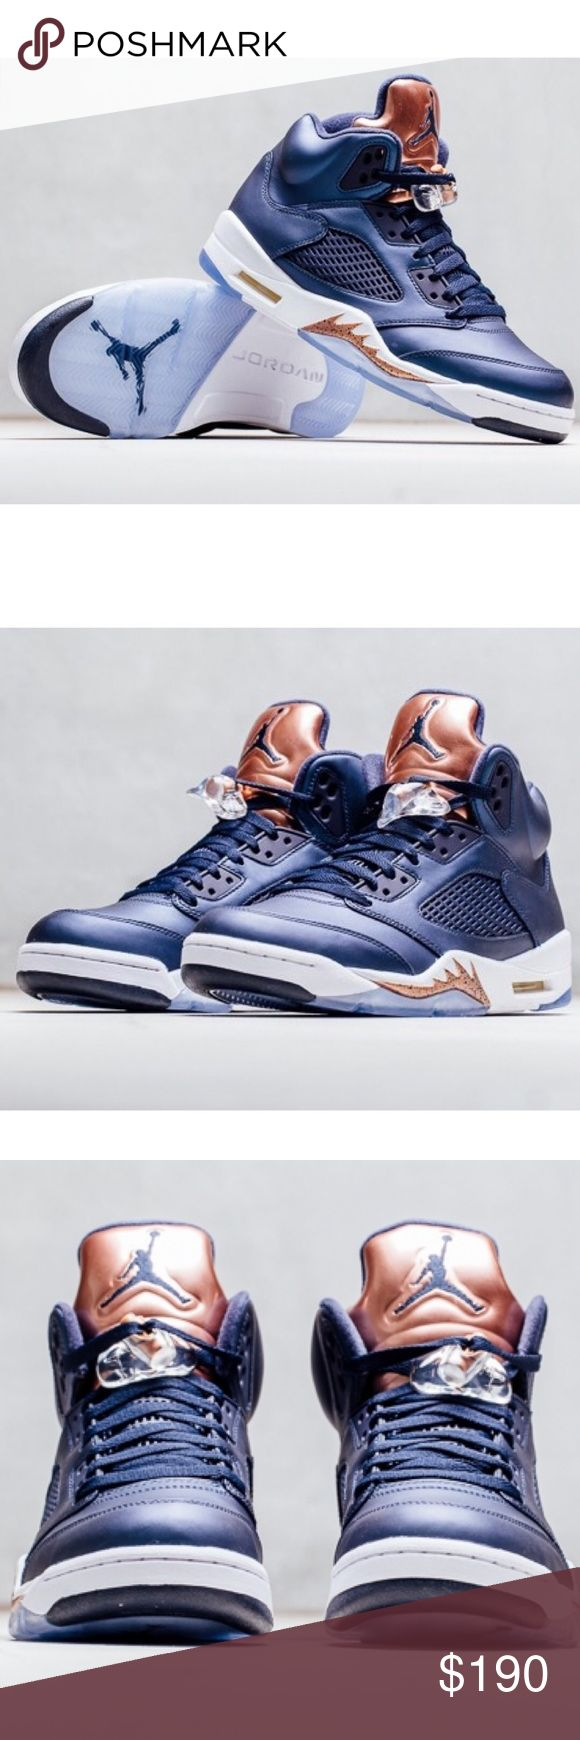 ✨✨{Nike} Air Jordan 5 Retro Men's size 8, equivalent to women's size 9 (26 cm, U.K 7). Brand new in box, never been worn. Super cute, color: blue, bronze, and white. Price is firm.   ❌ NO TRADES - SELLING ON POSH ONLY ❌ ❌ NO LOWBALLING ❌  ✅ Bundle Discounts ✅ Ship Next Day of Purchase   % AUTHENTIC Nike Shoes